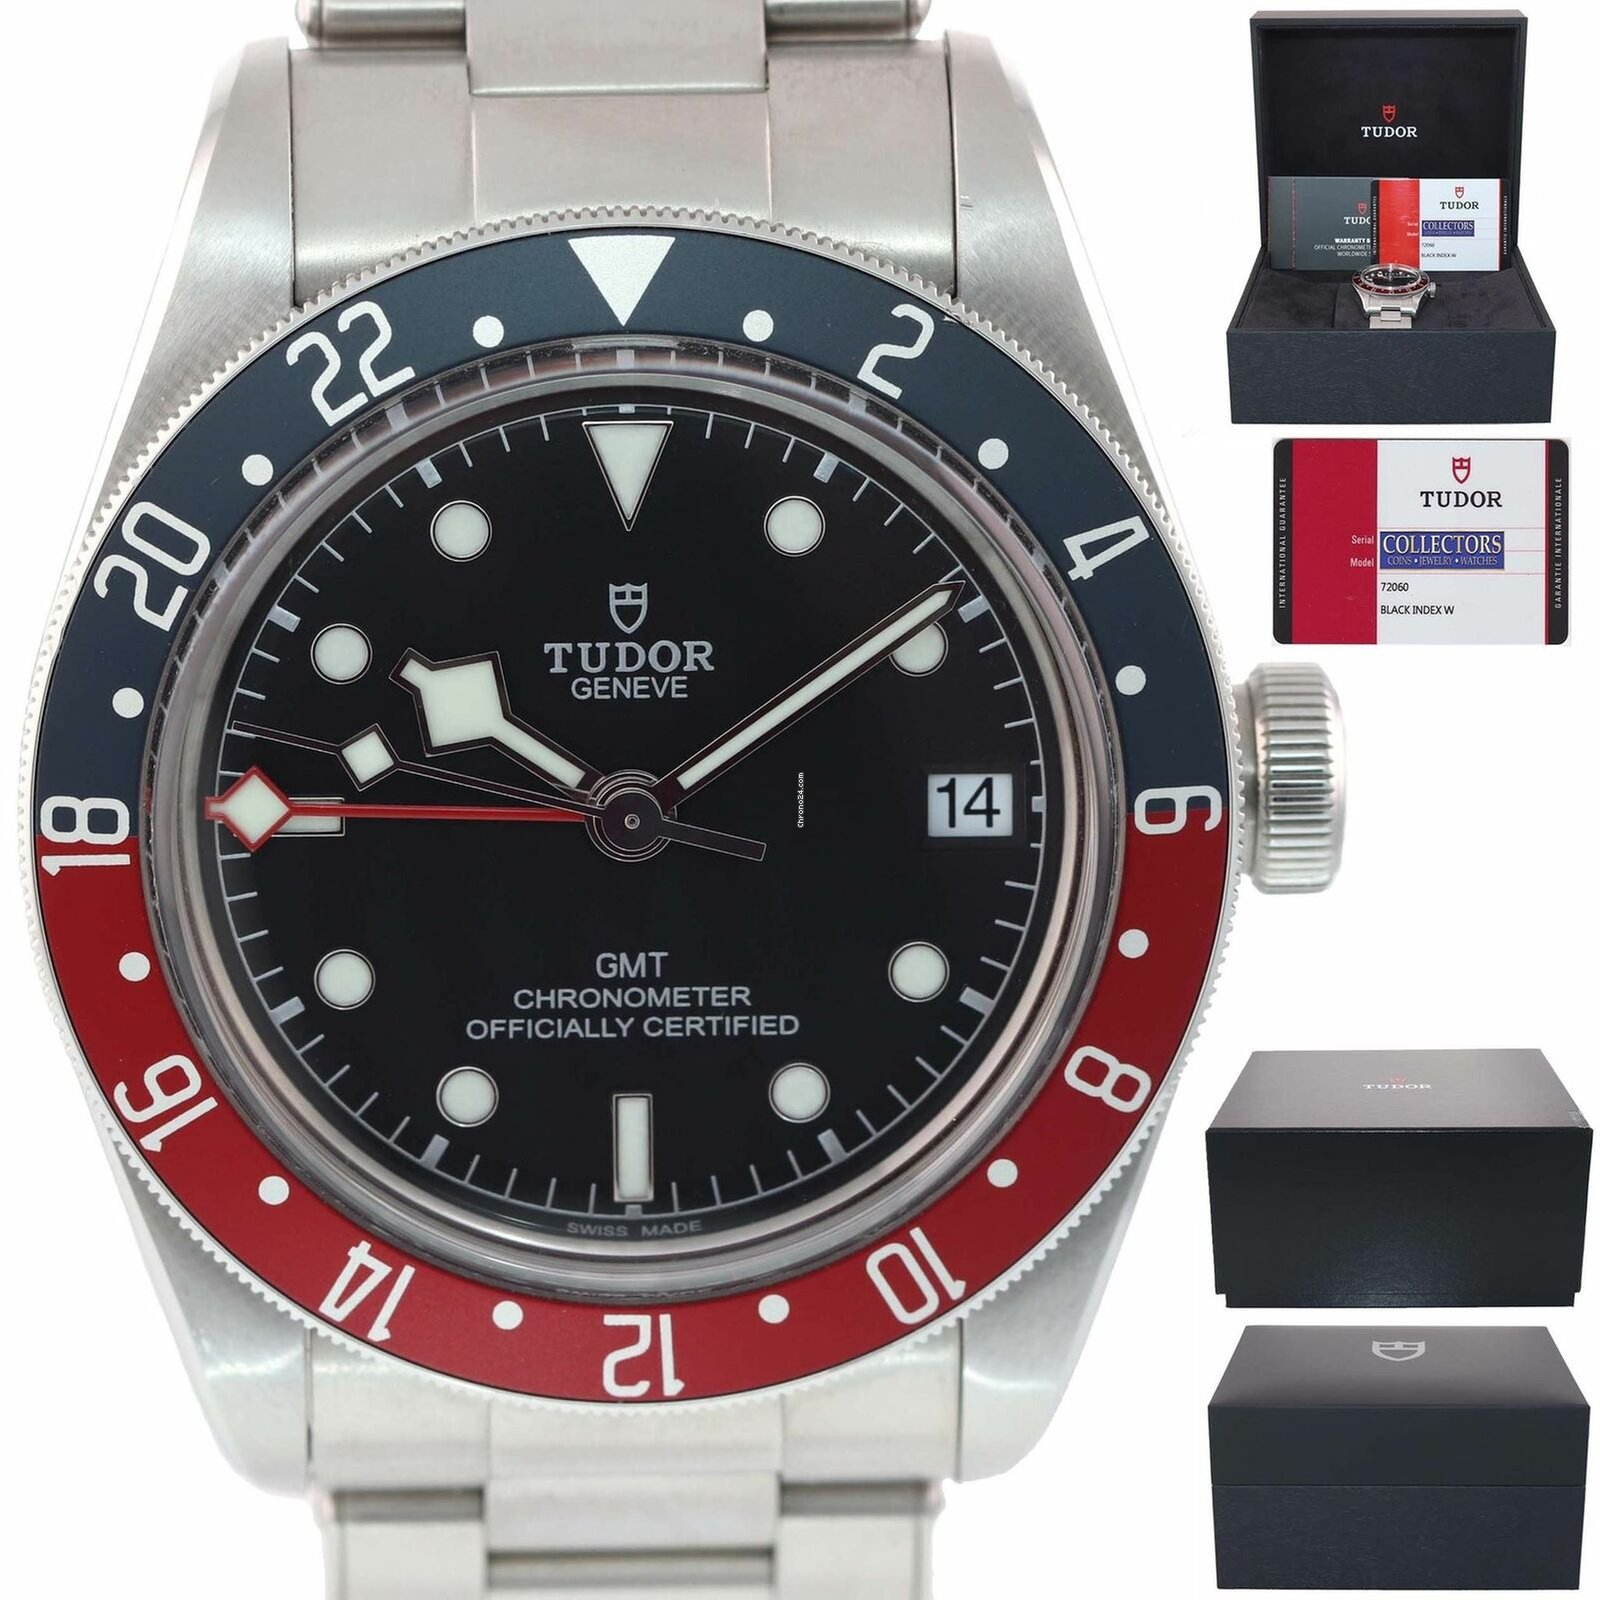 4c880319b34a Tudor 2019 LNIB COMPLETE Black Bay GMT Pepsi 79830RB 41mm... en venta por  4.375 € por parte de un Trusted Seller de Chrono24